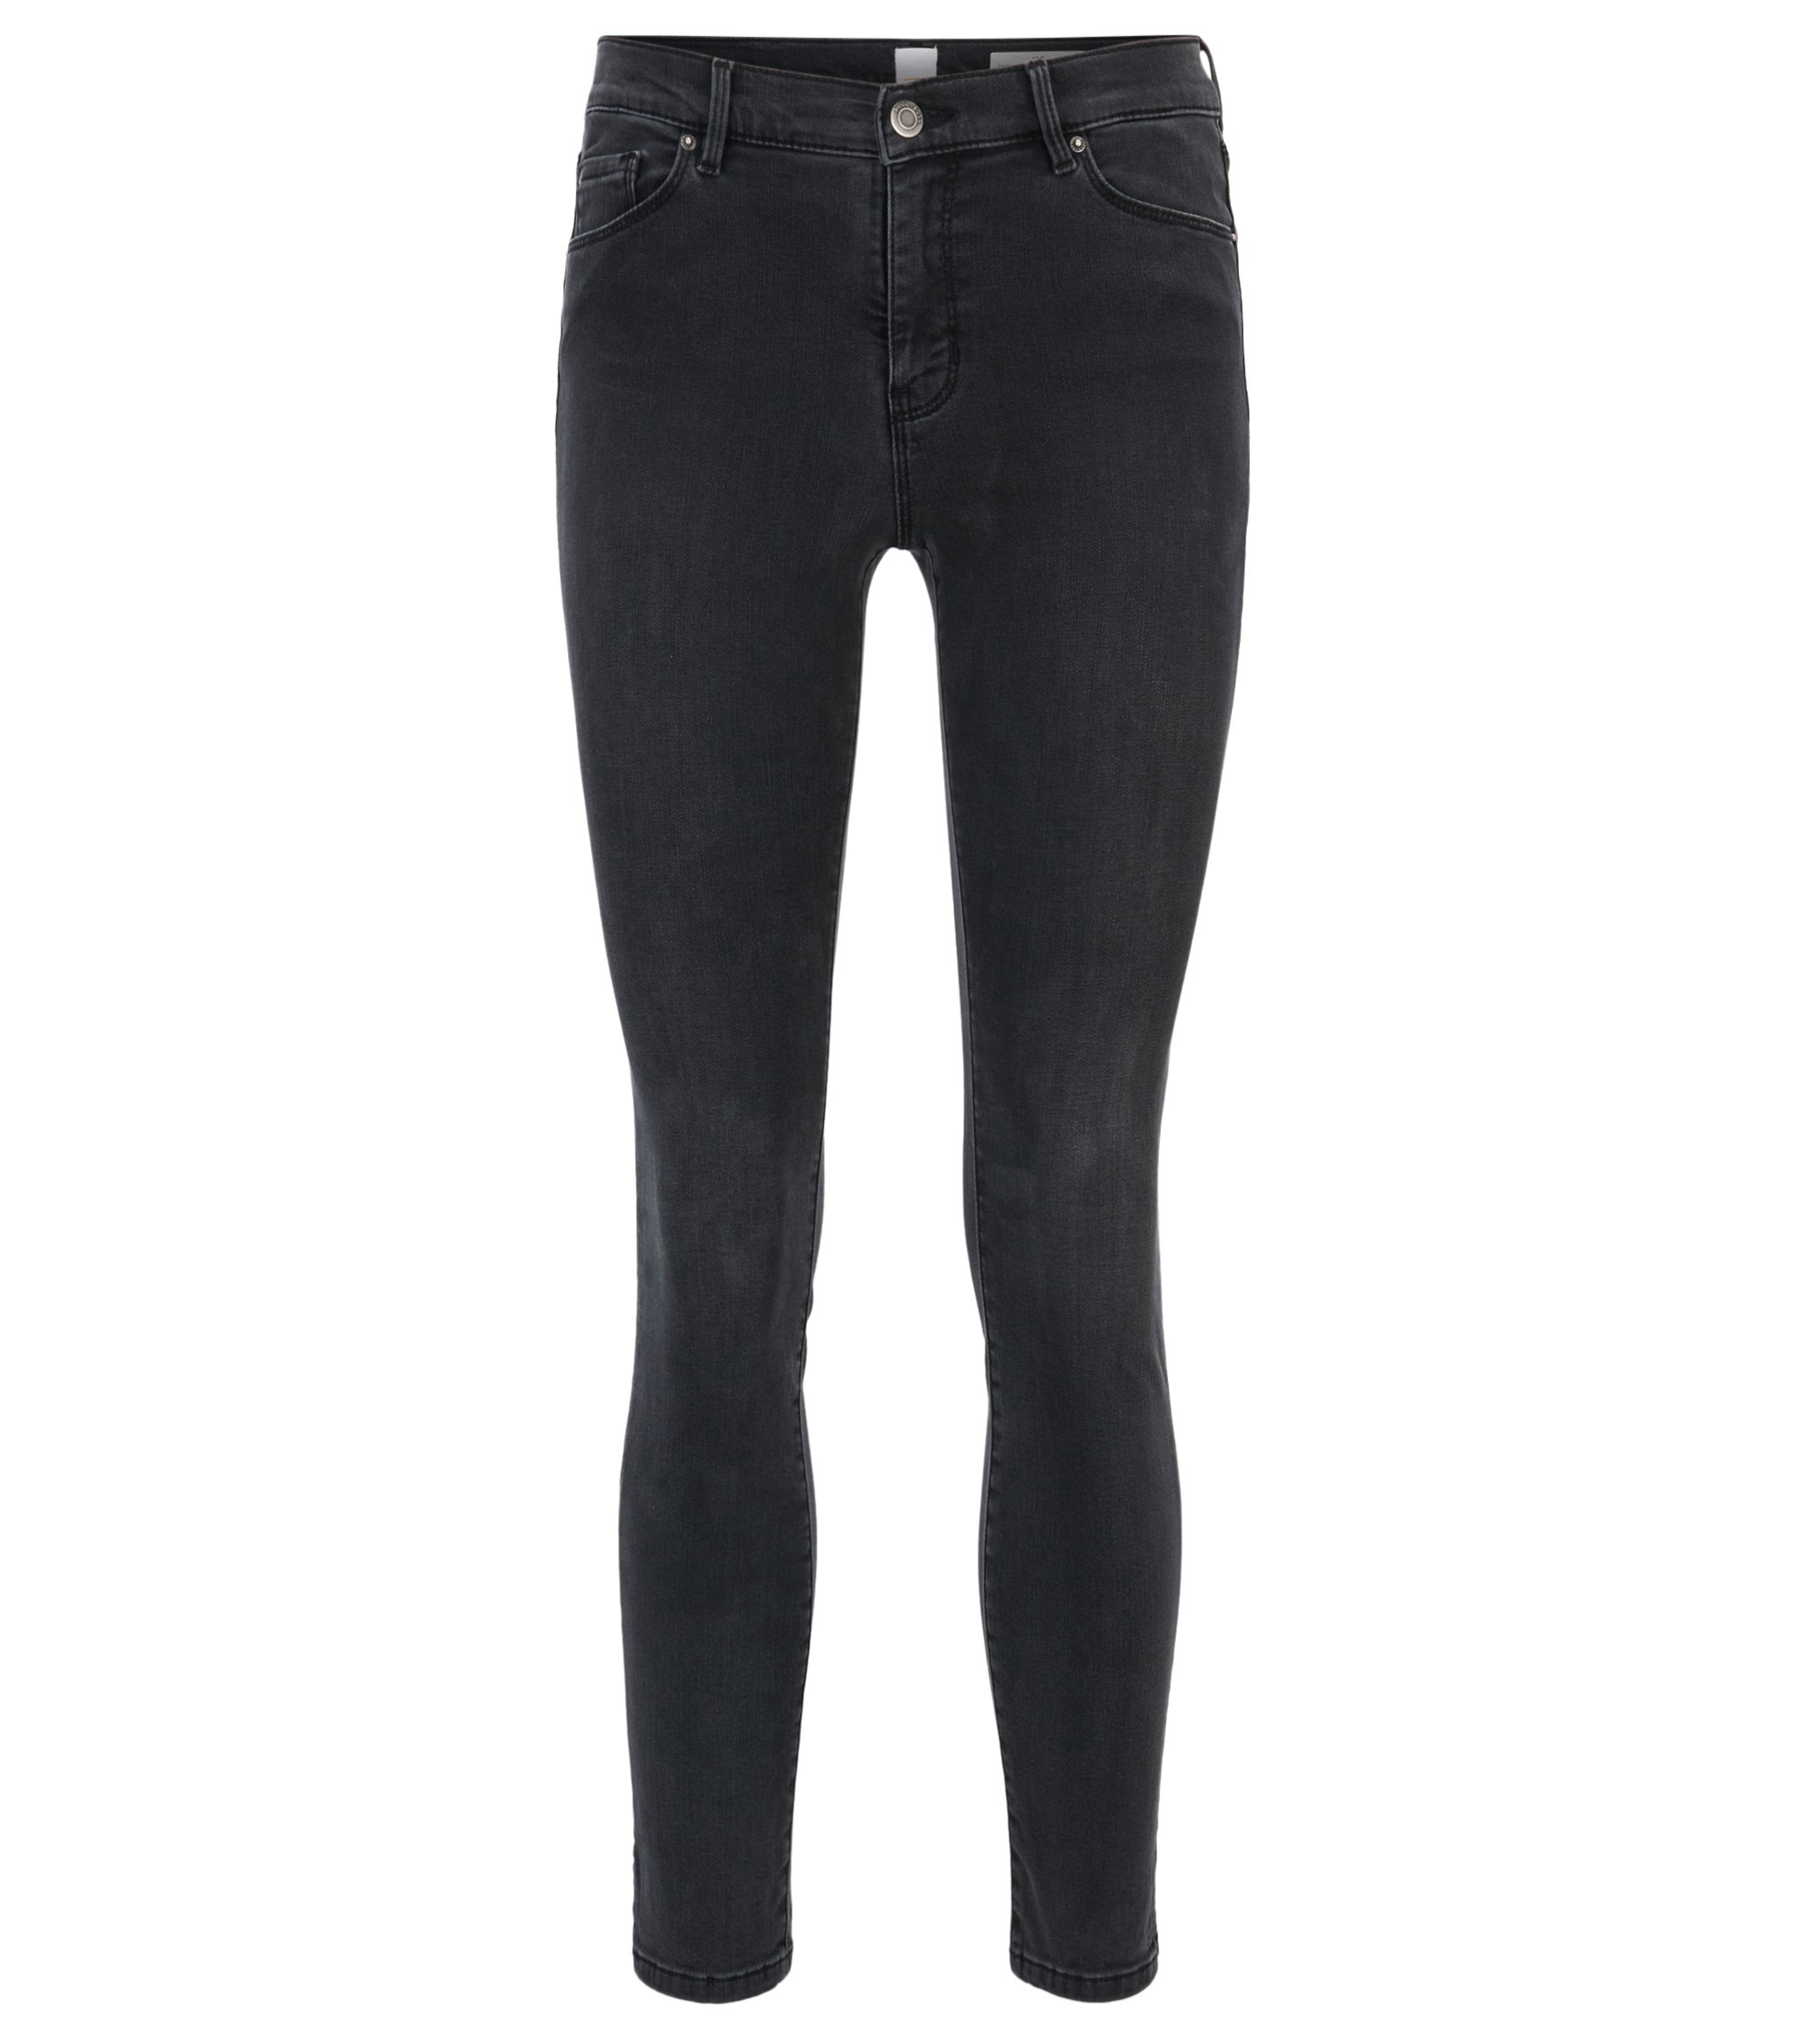 Skinny-fit cropped jeans in power-stretch denim, Anthracite